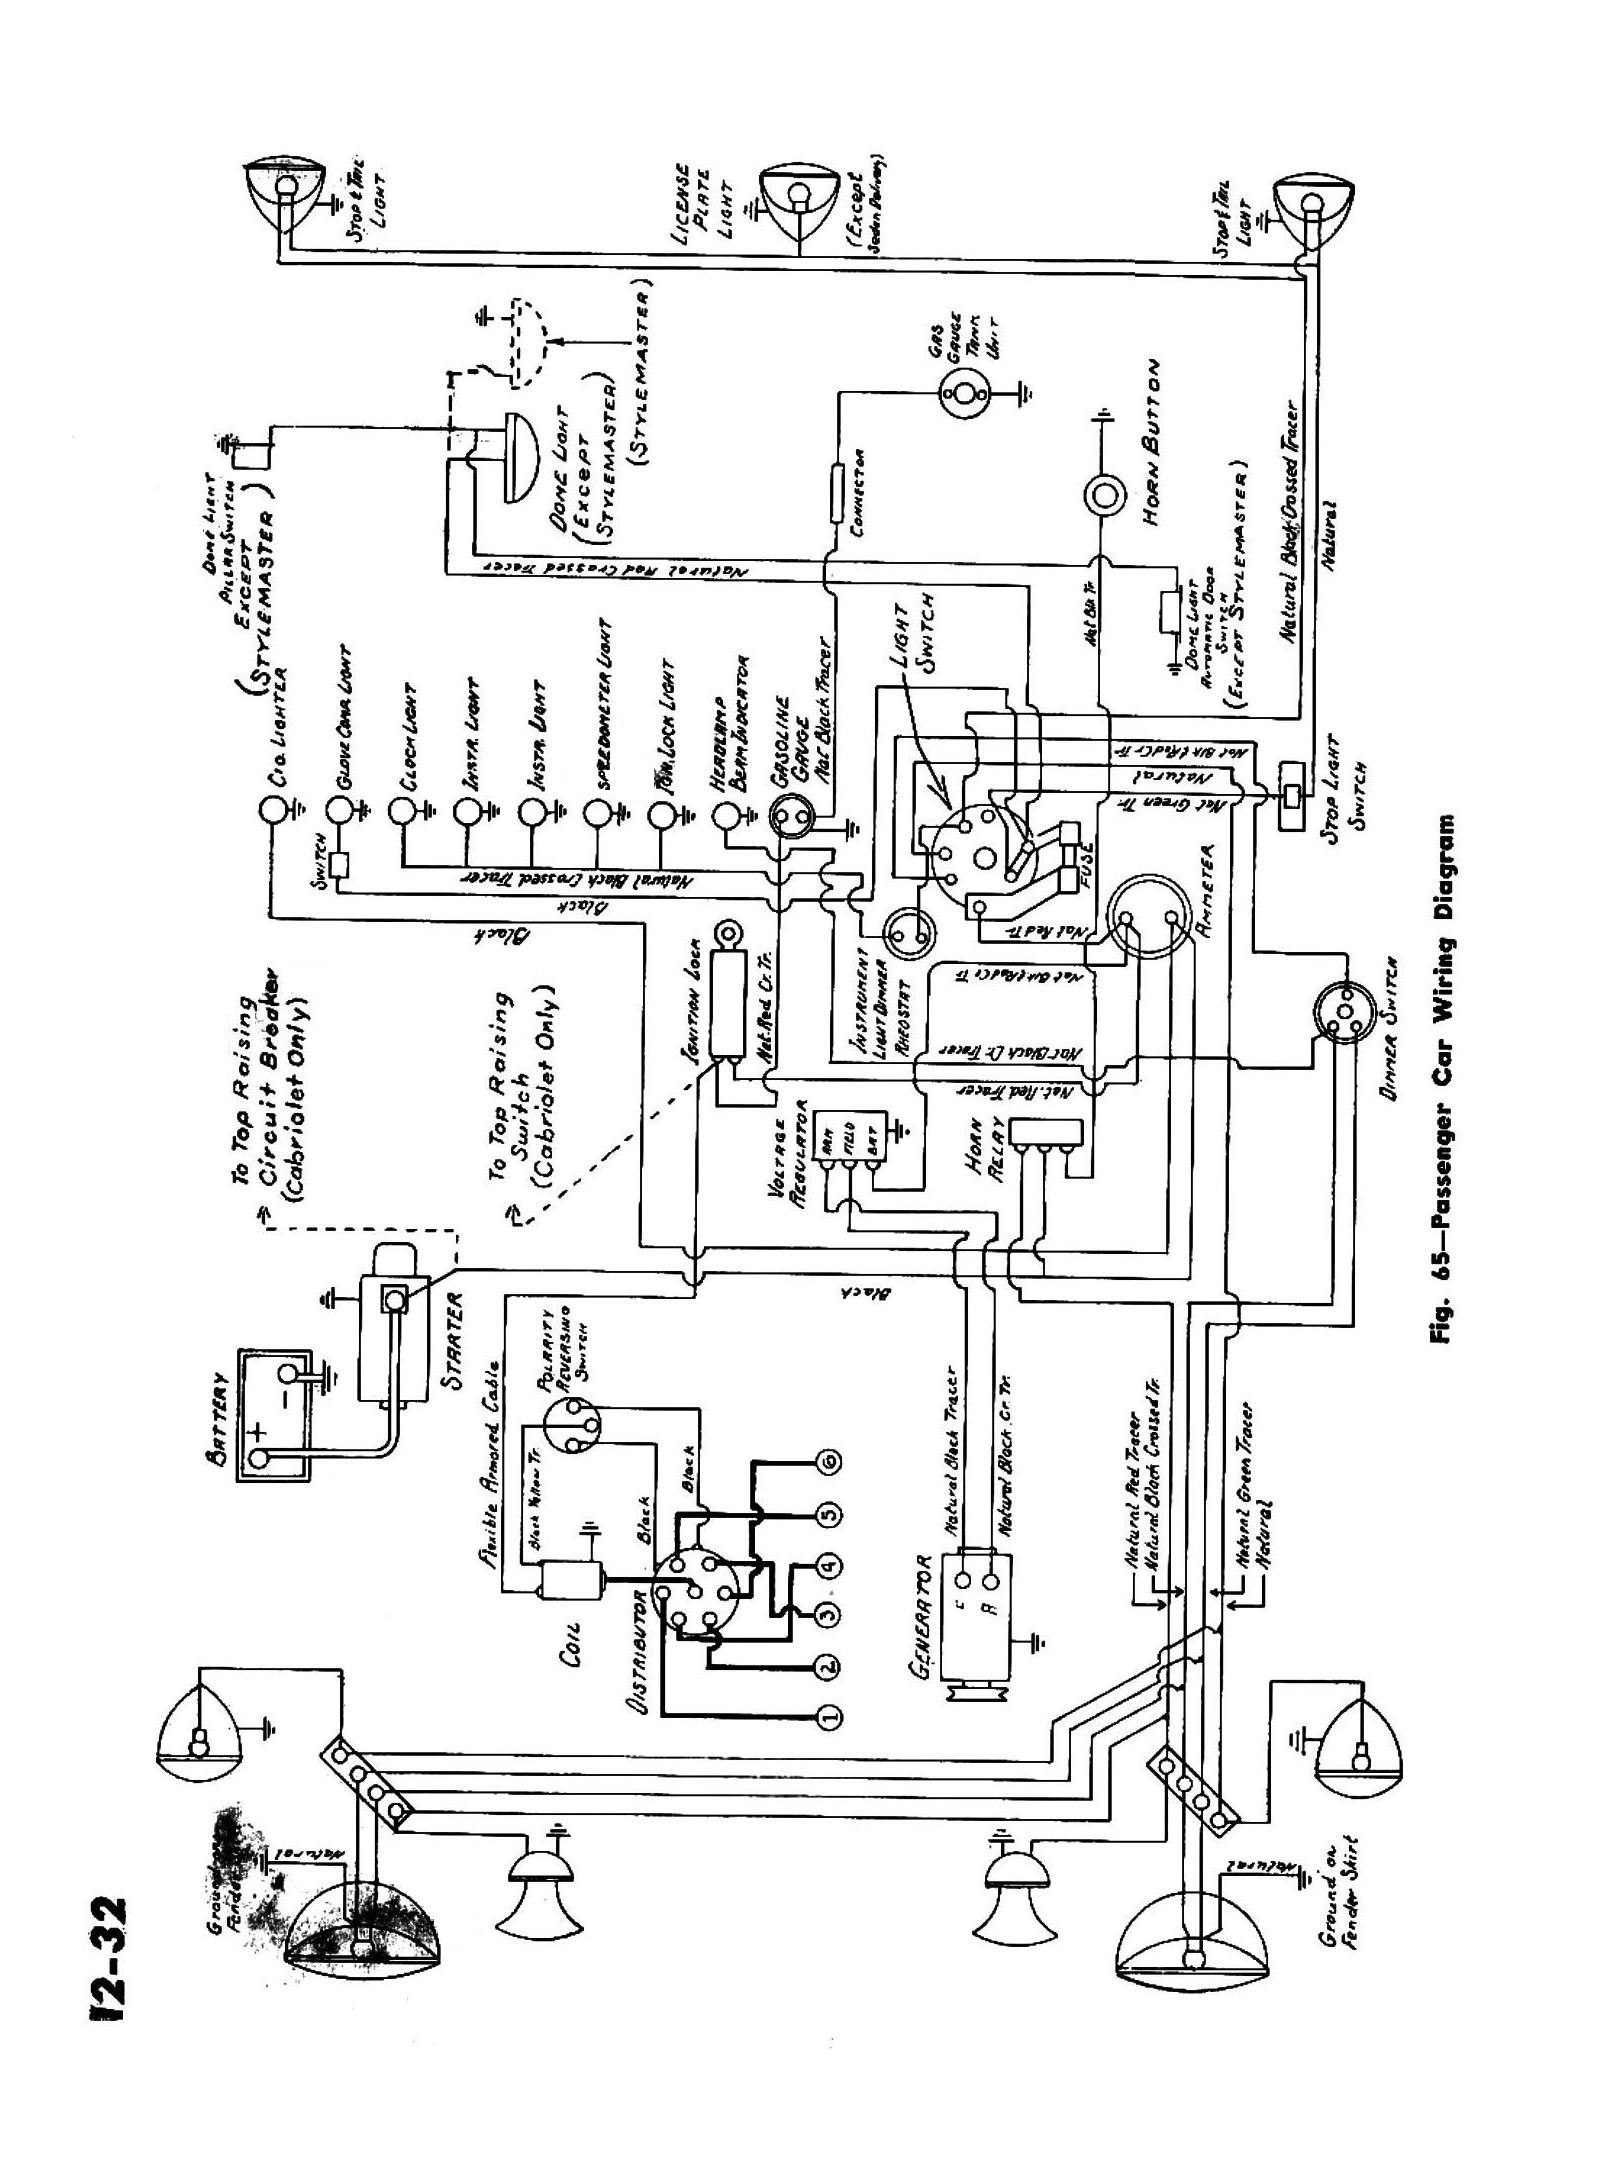 45car chevy wiring diagrams country coach wiring diagram at edmiracle.co